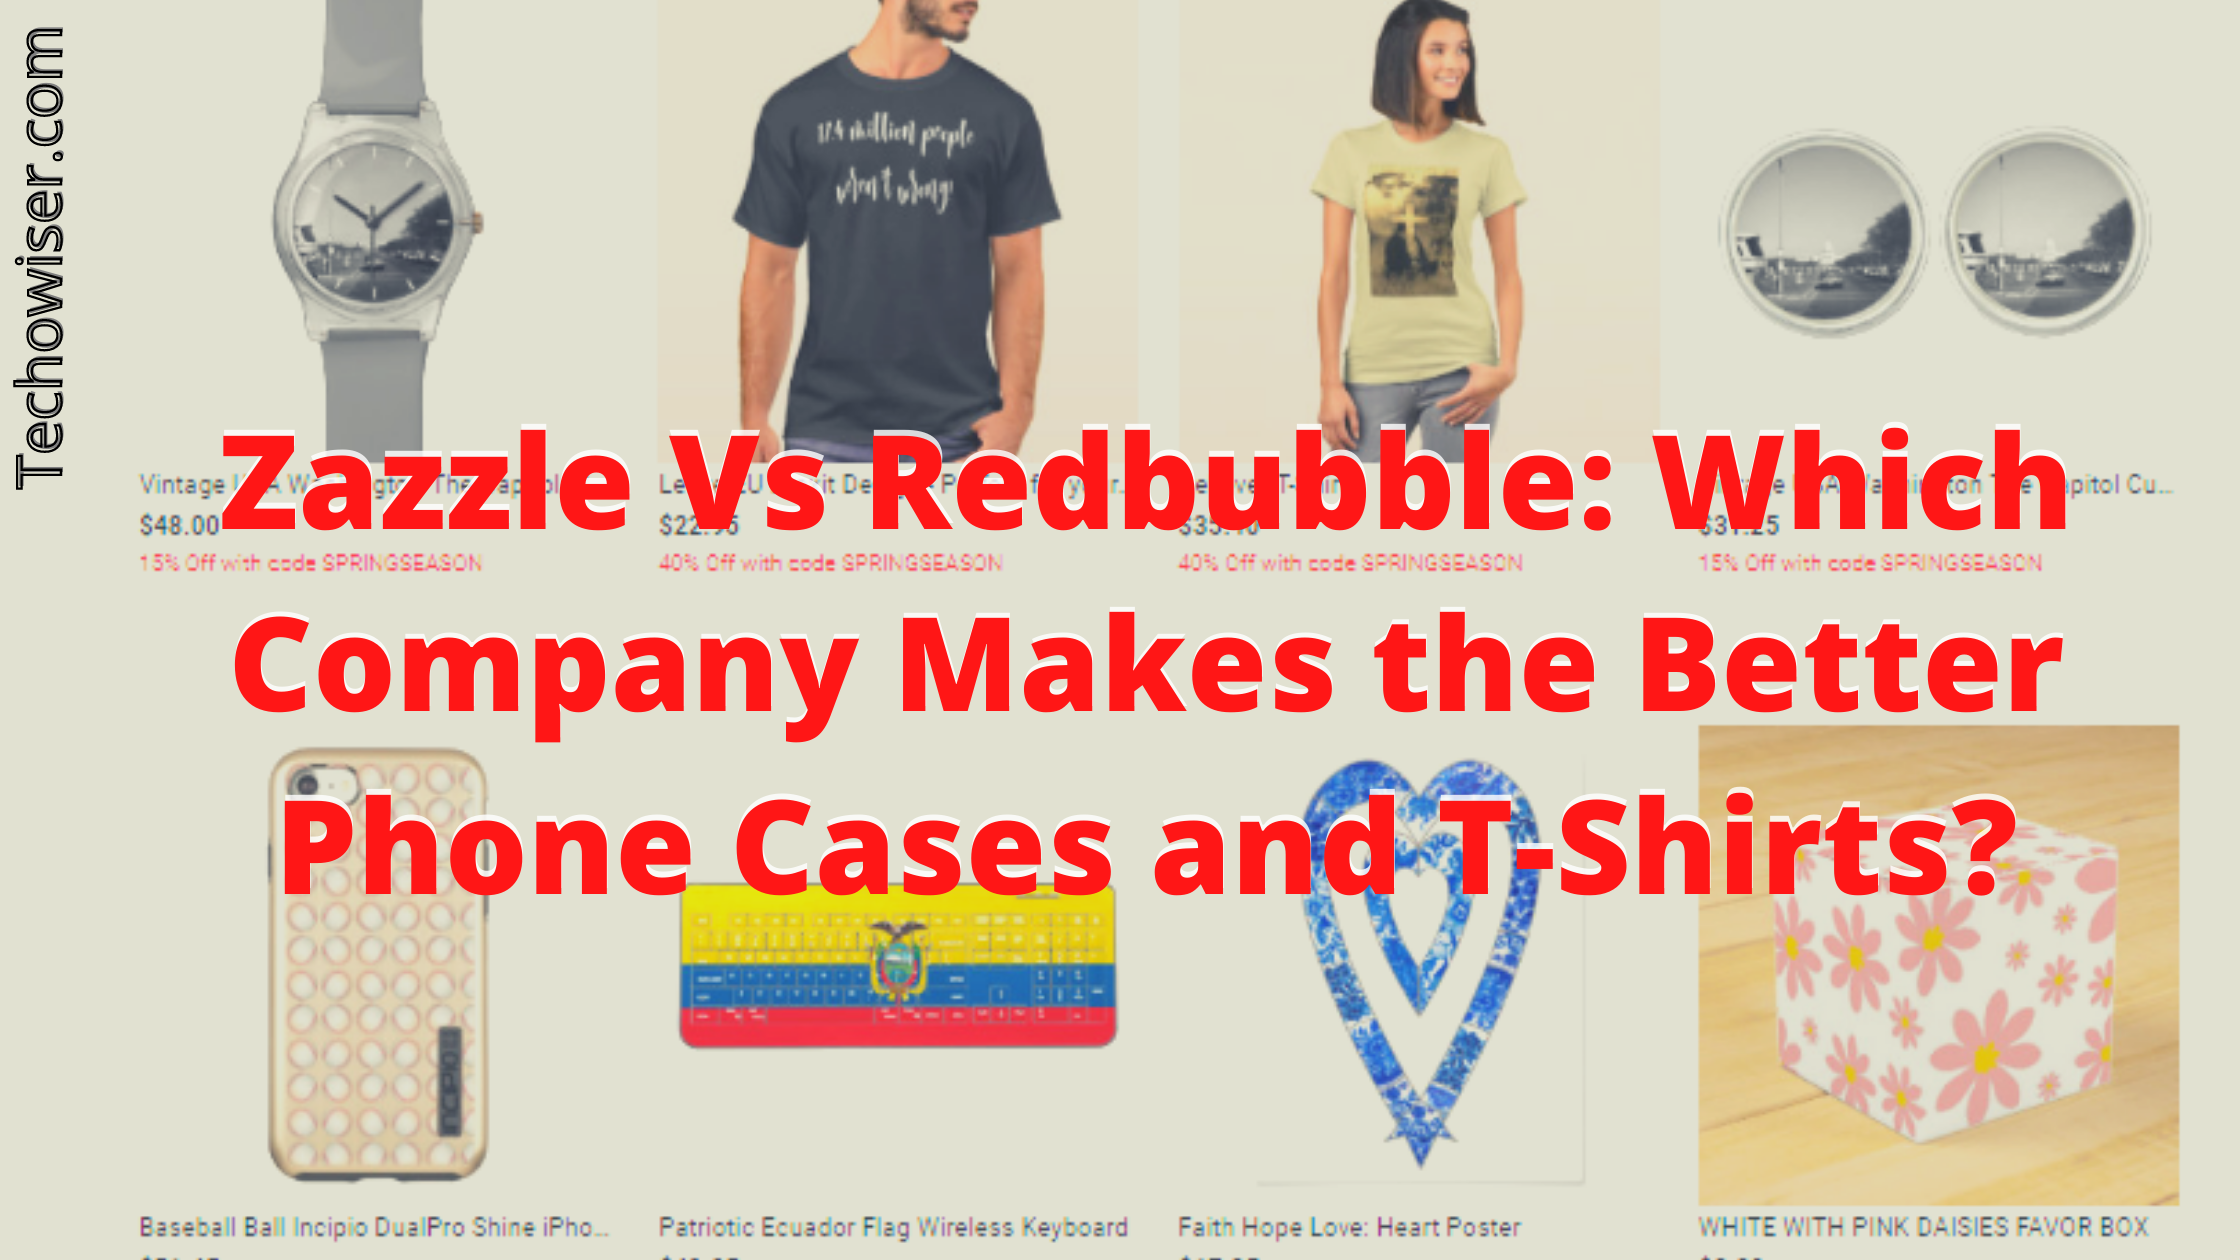 Zazzle Vs Redbubble: Which Company Makes the Better Phone Cases and T-Shirts?